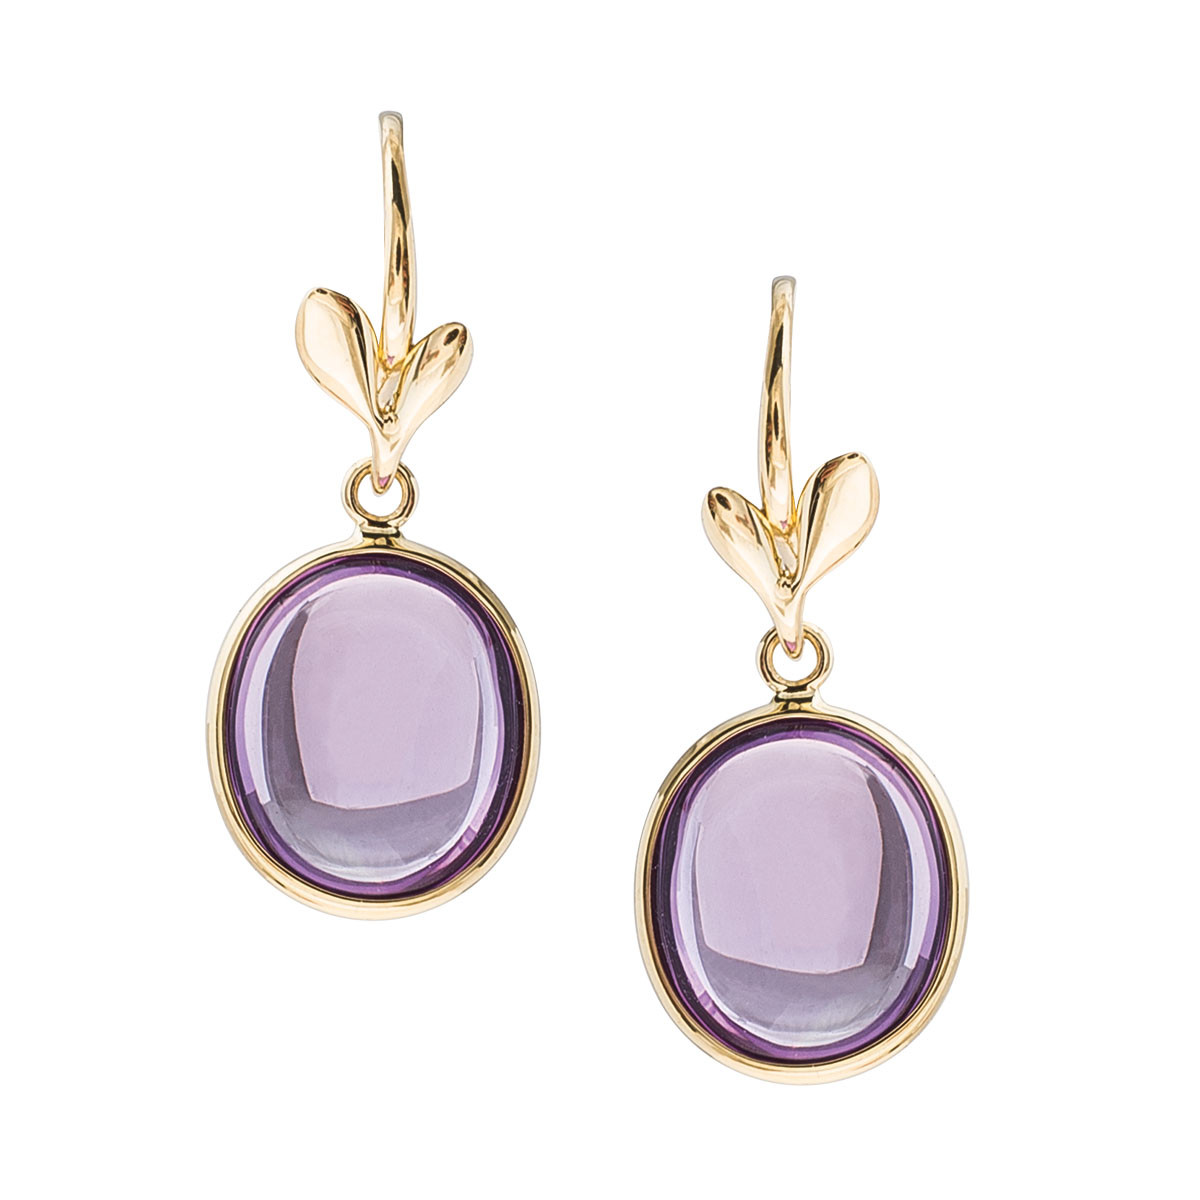 92813ab16 Vintage Tiffany & Co. Paloma Picasso Olive Leaf Amethyst Drop Earrings  Gallery Image